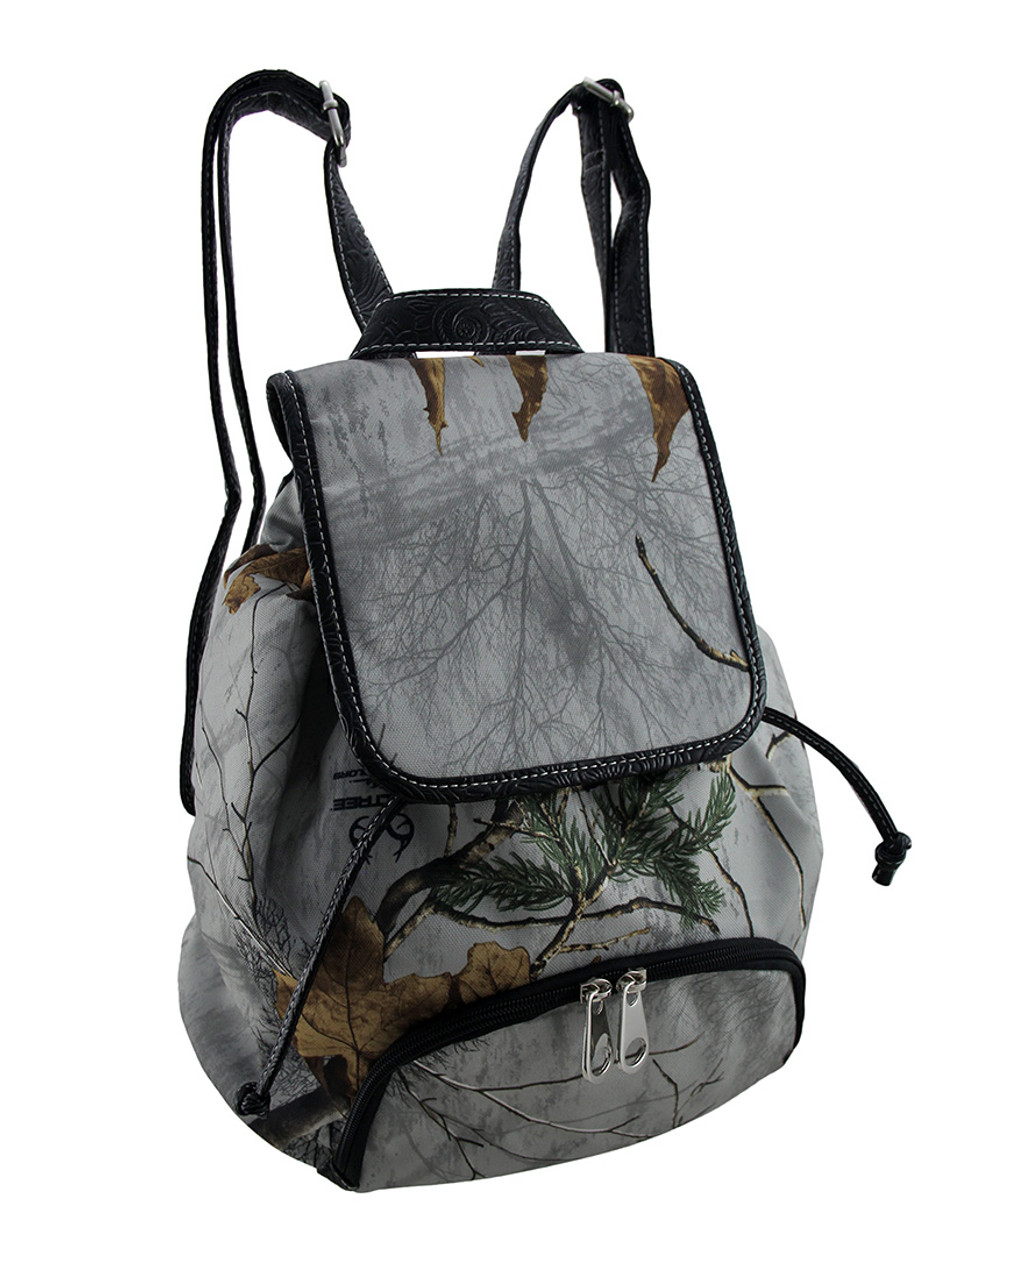 Camouflage Concealed Carry Backpack - Swiss Paralympic